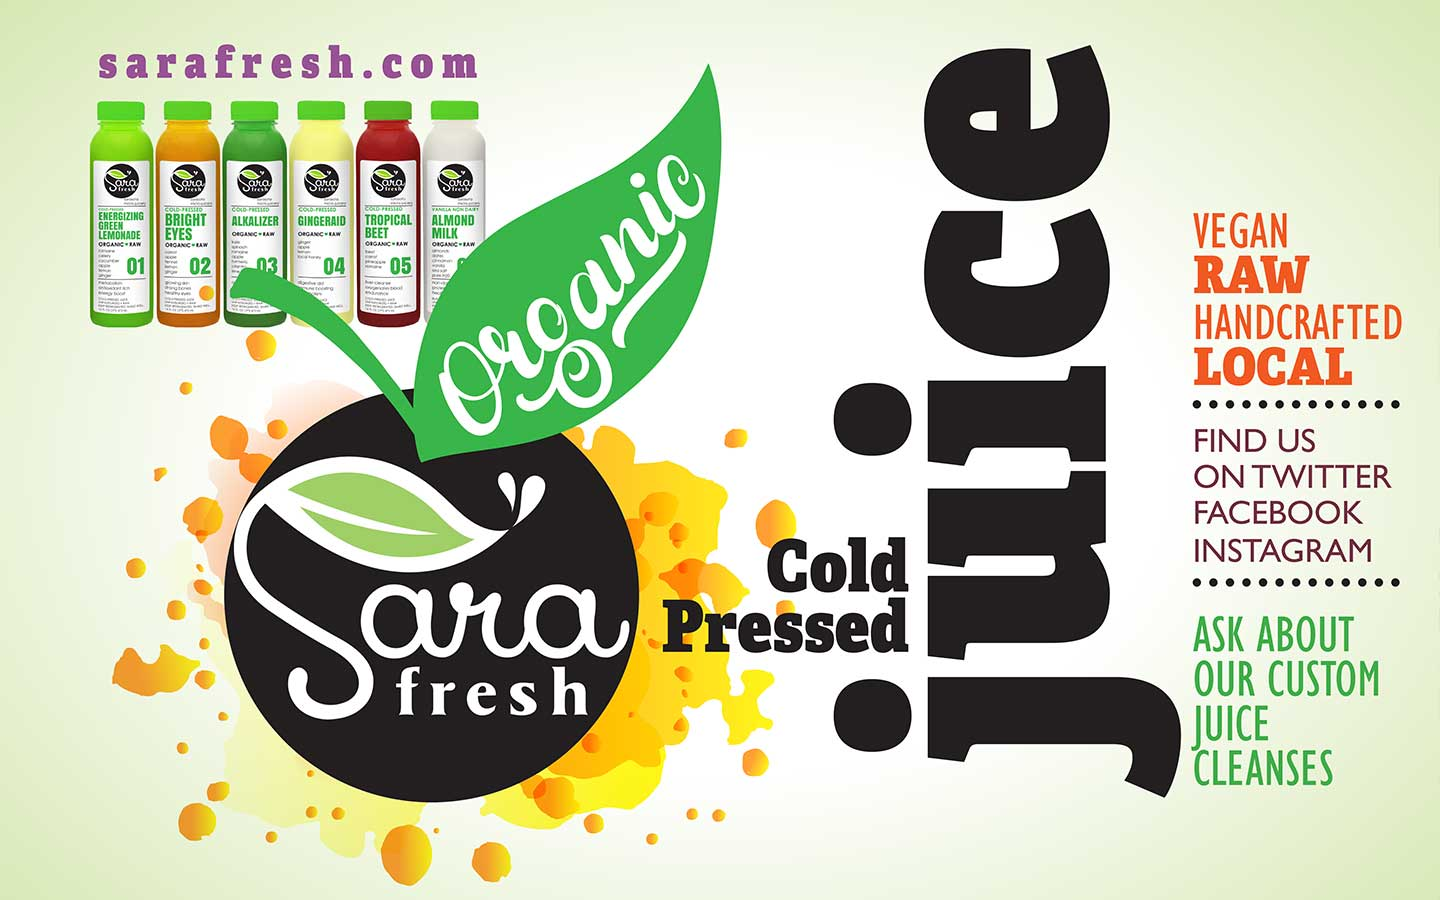 Graphic design by Caitilin McPhillips for an organic food cart based in Florida.